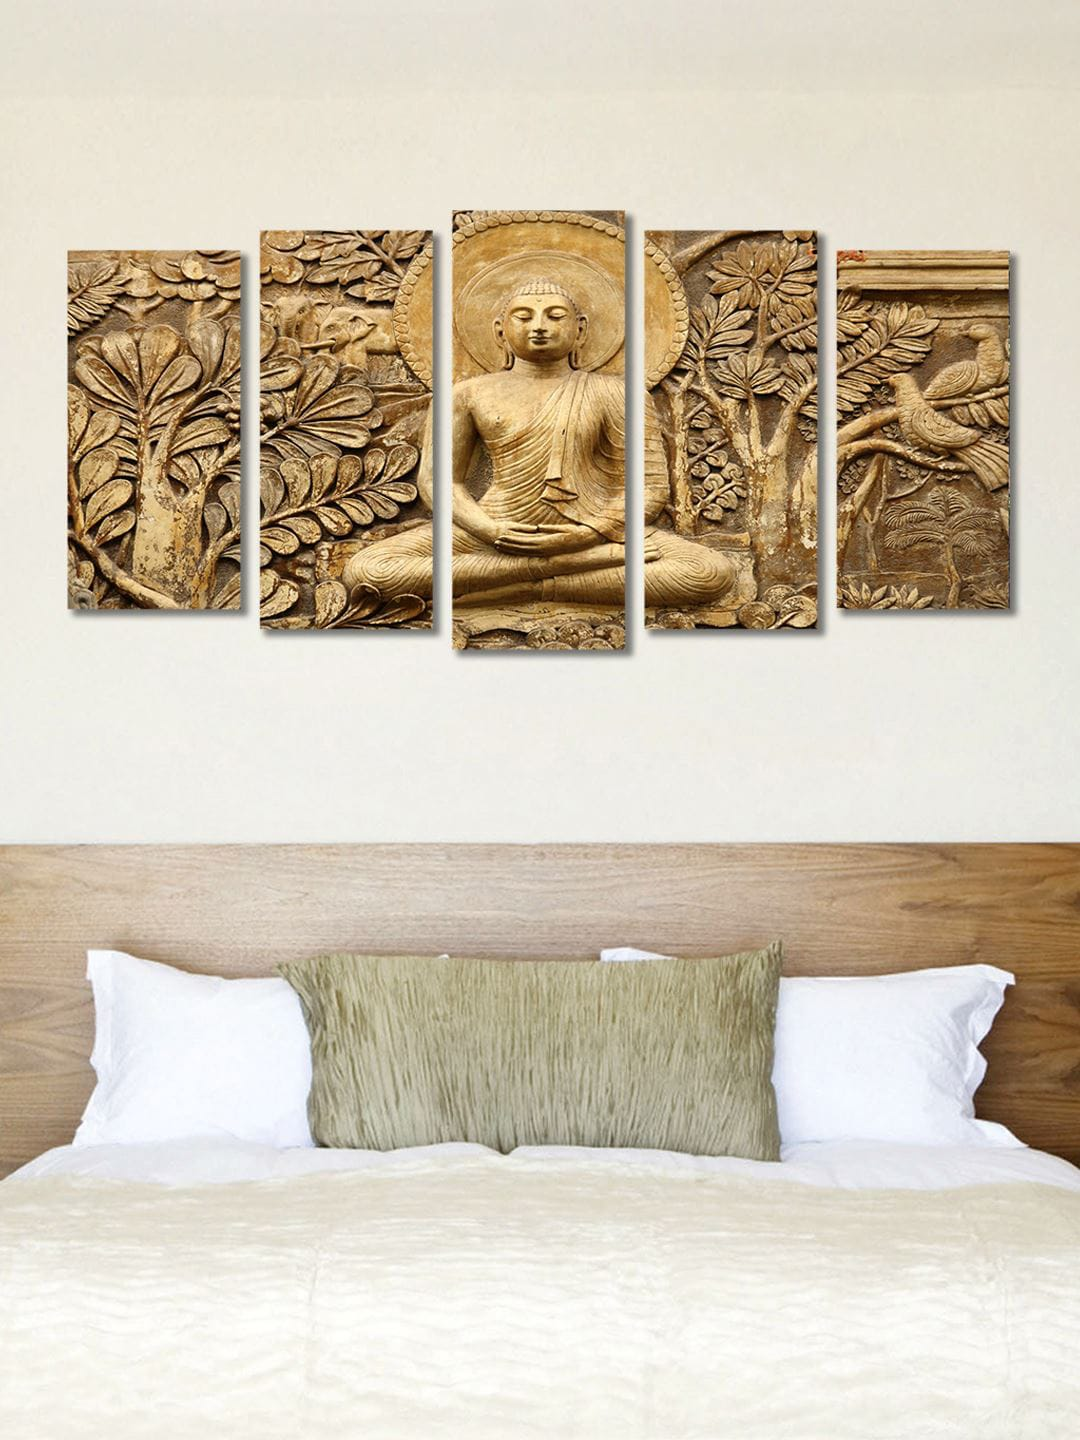 c1721f22d240 Wall Art - Buy Wall Arts Online at Best Price in India